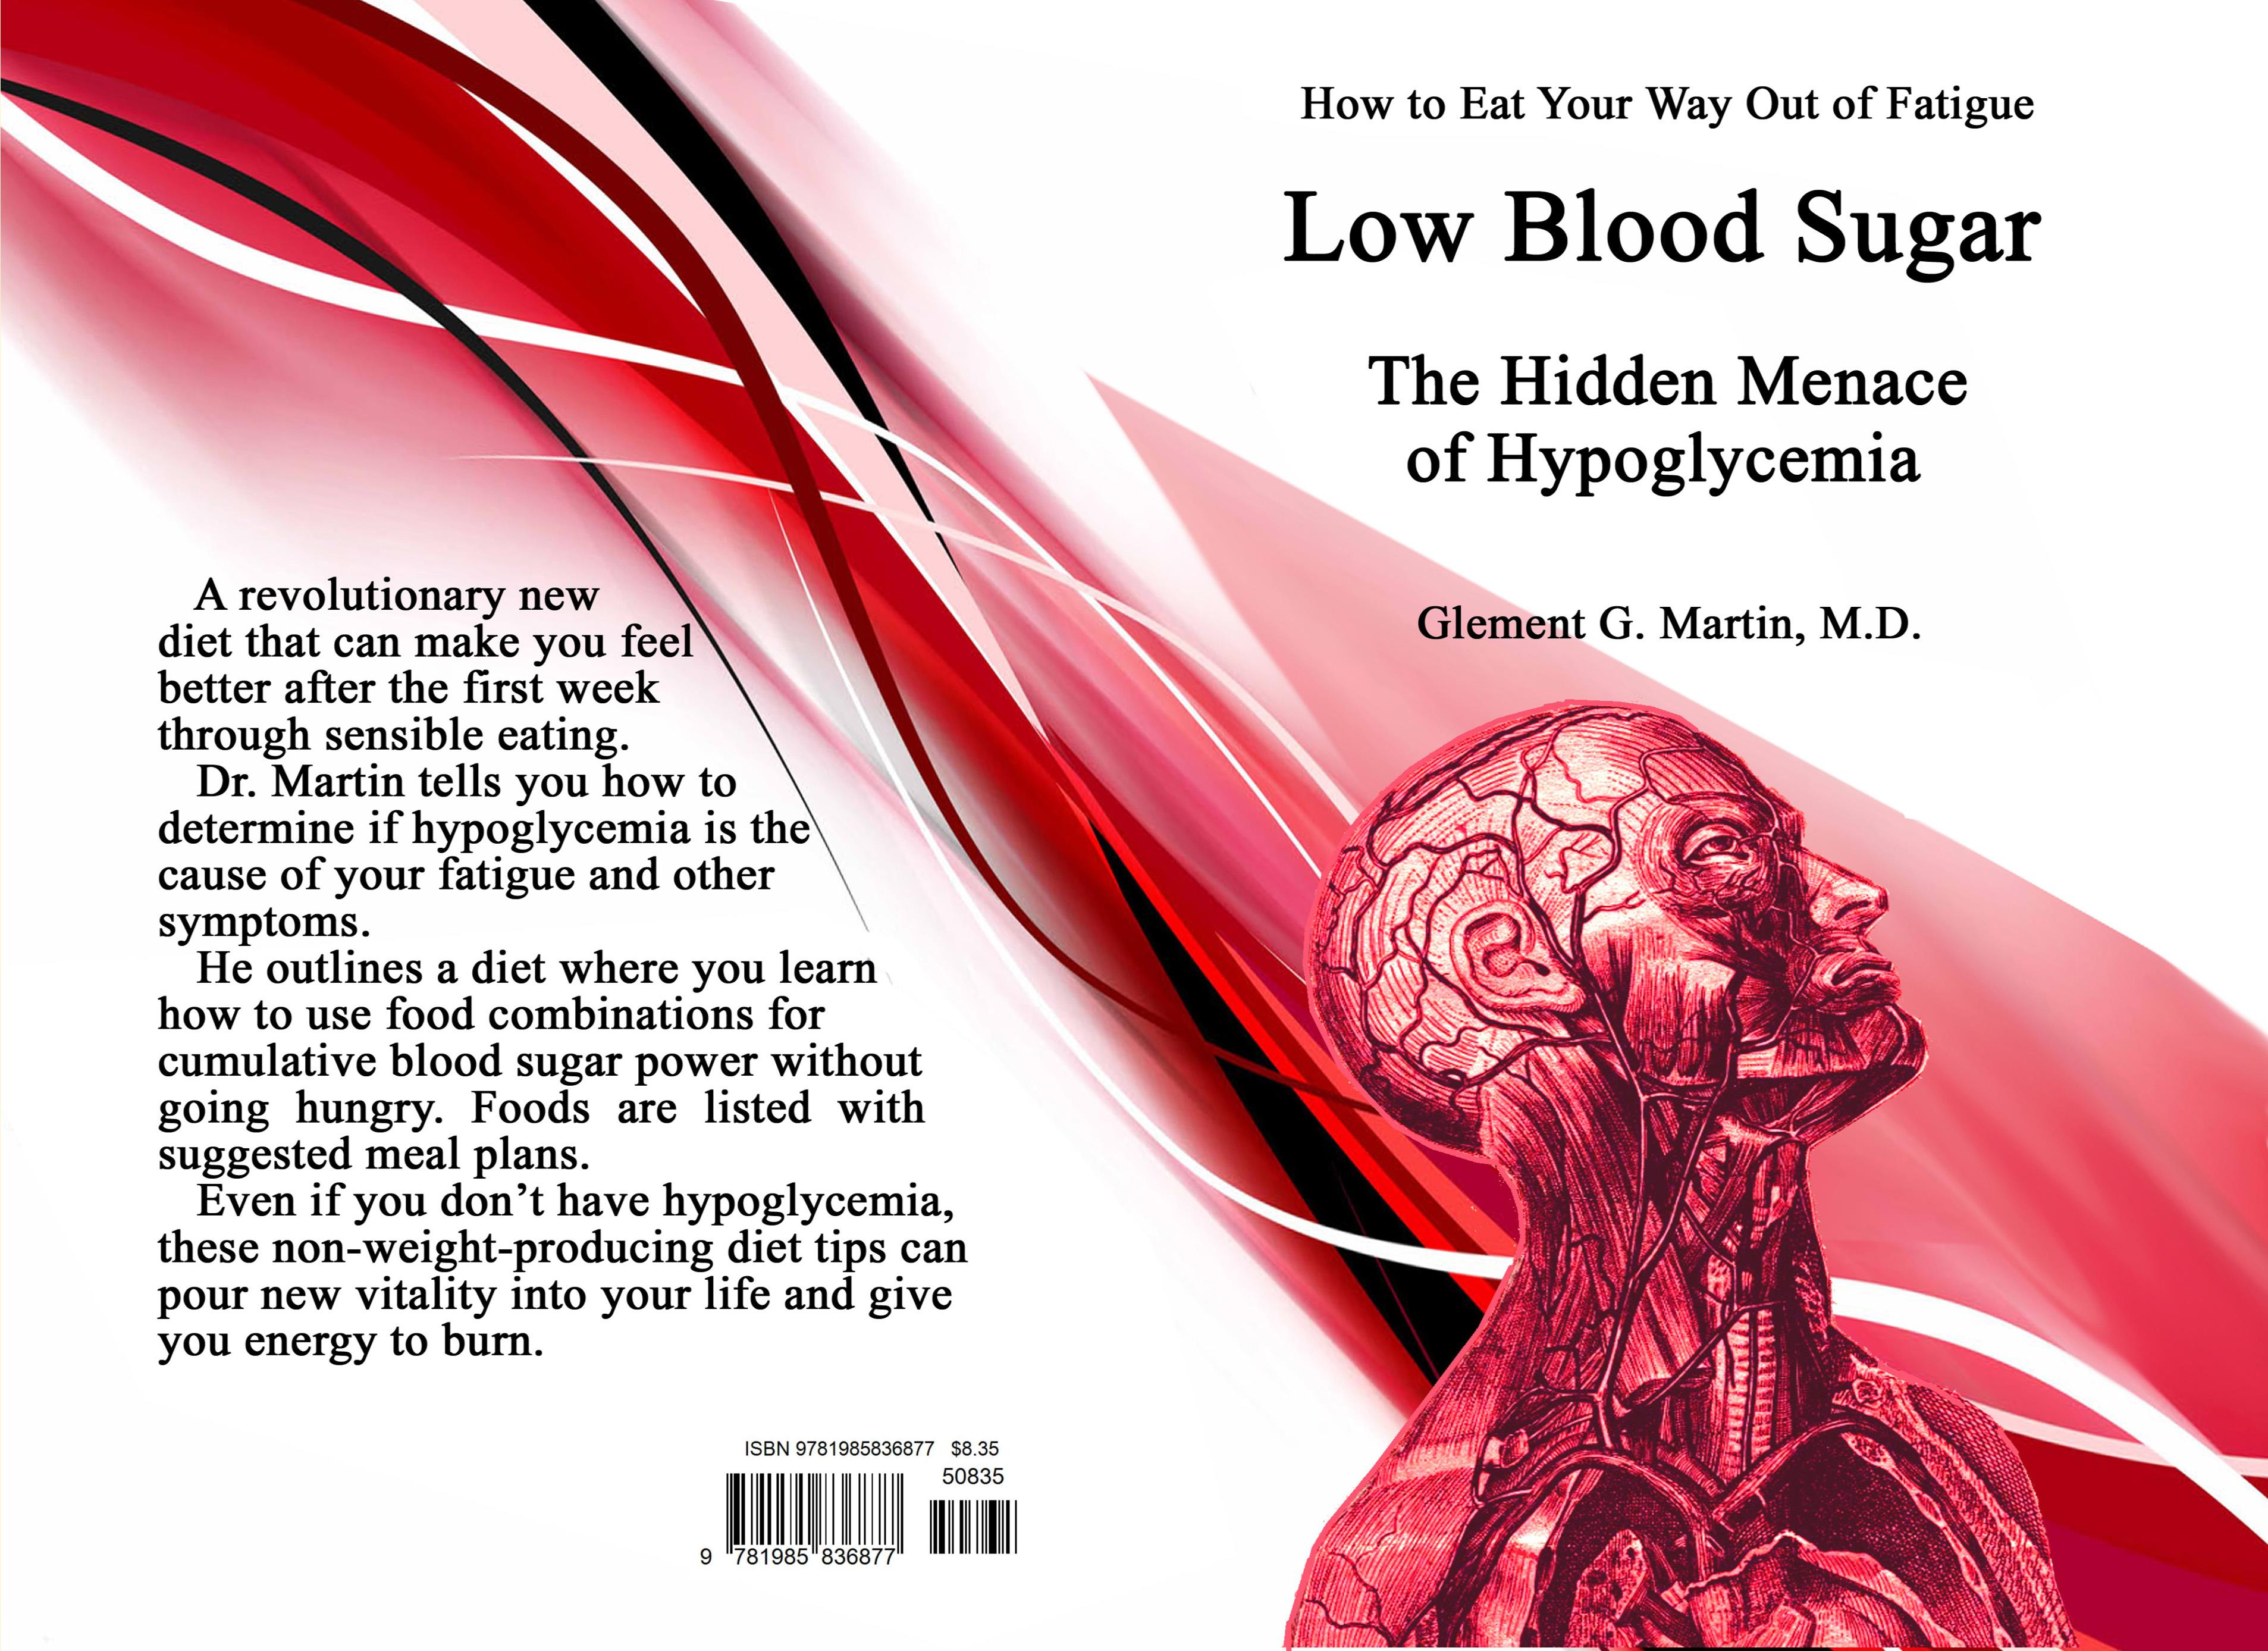 Low Blood Sugar      The Hidden Menace of Hypoglycemia cover image